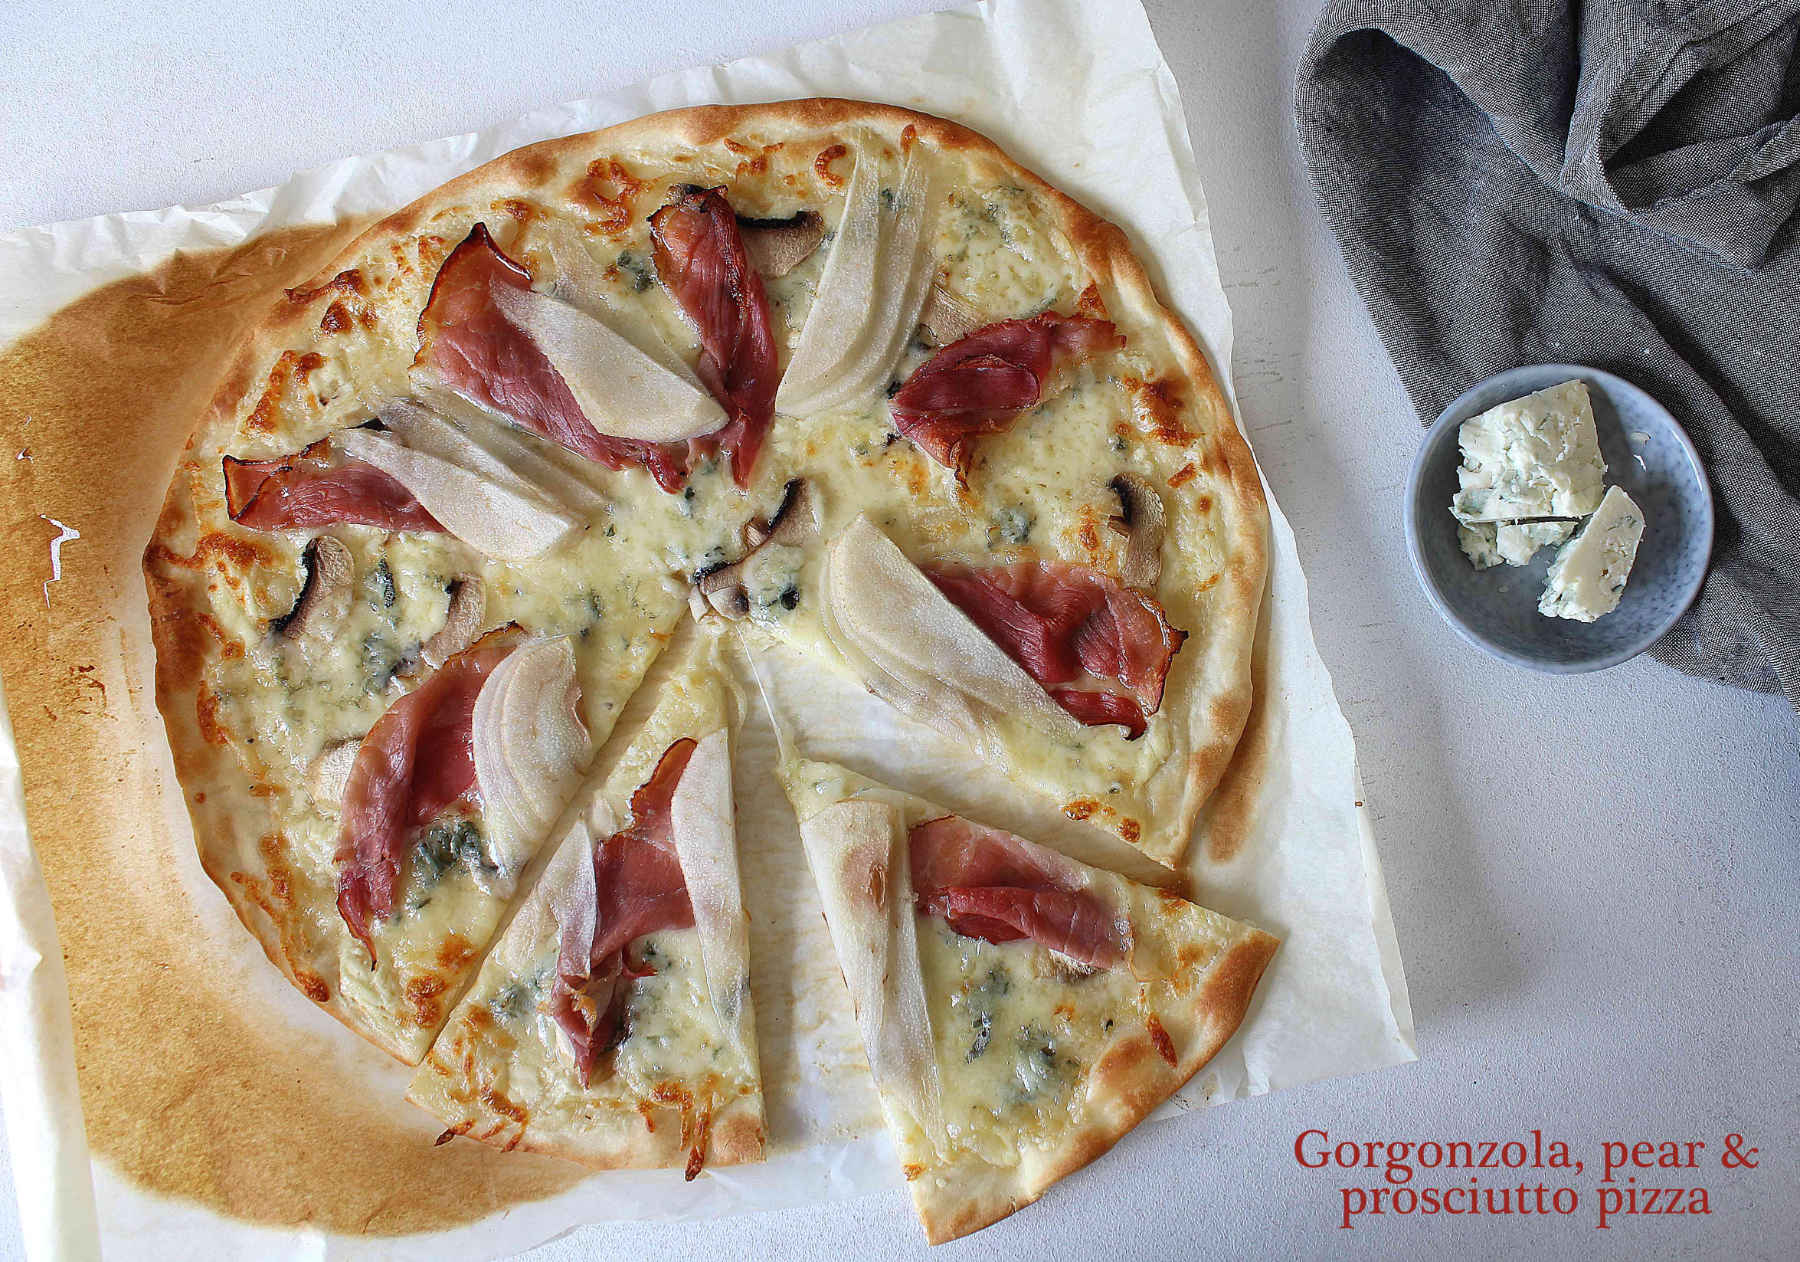 Prosciutto, gorgonzola and pear pizza